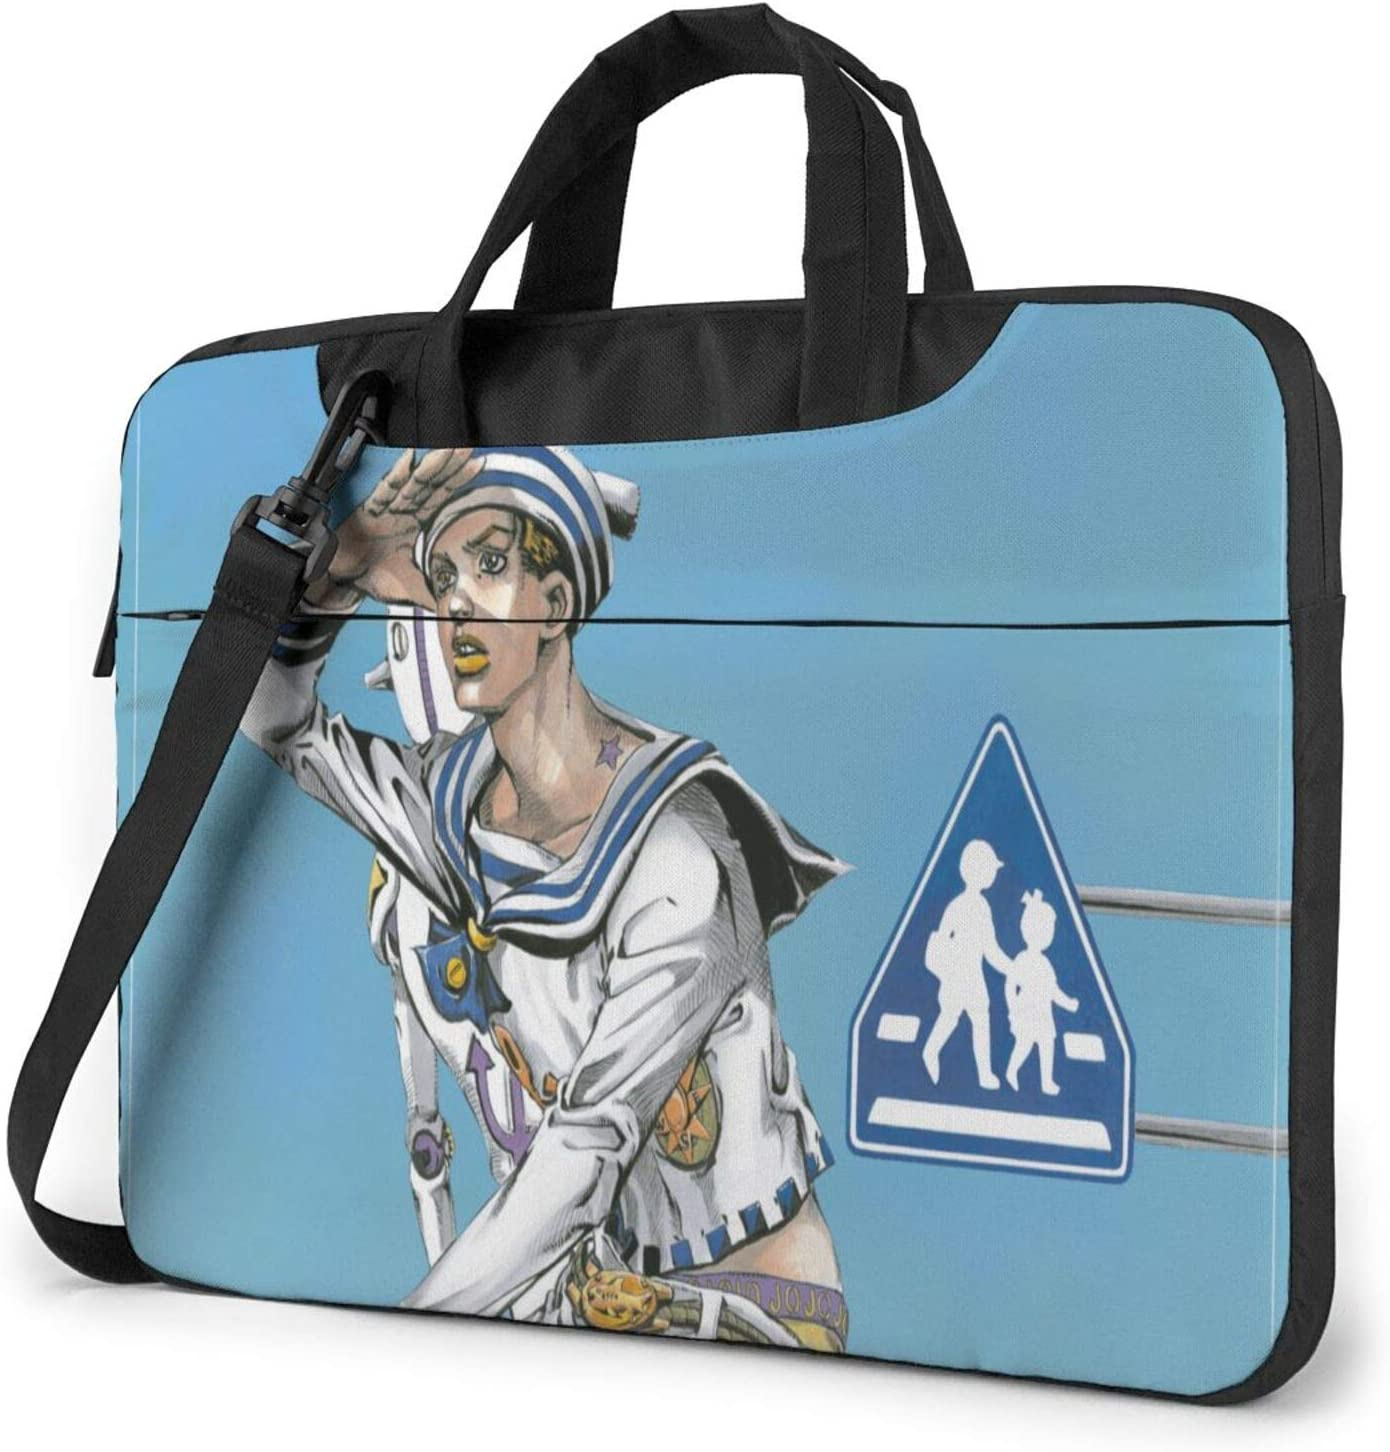 15.6 inch Laptop Sleeve Bag, JoJo's Bizarre Adventure Tablet Briefcase Ultra Portable Protective Shoulder Shockproof Laptop Canvas Cover MacBook Air